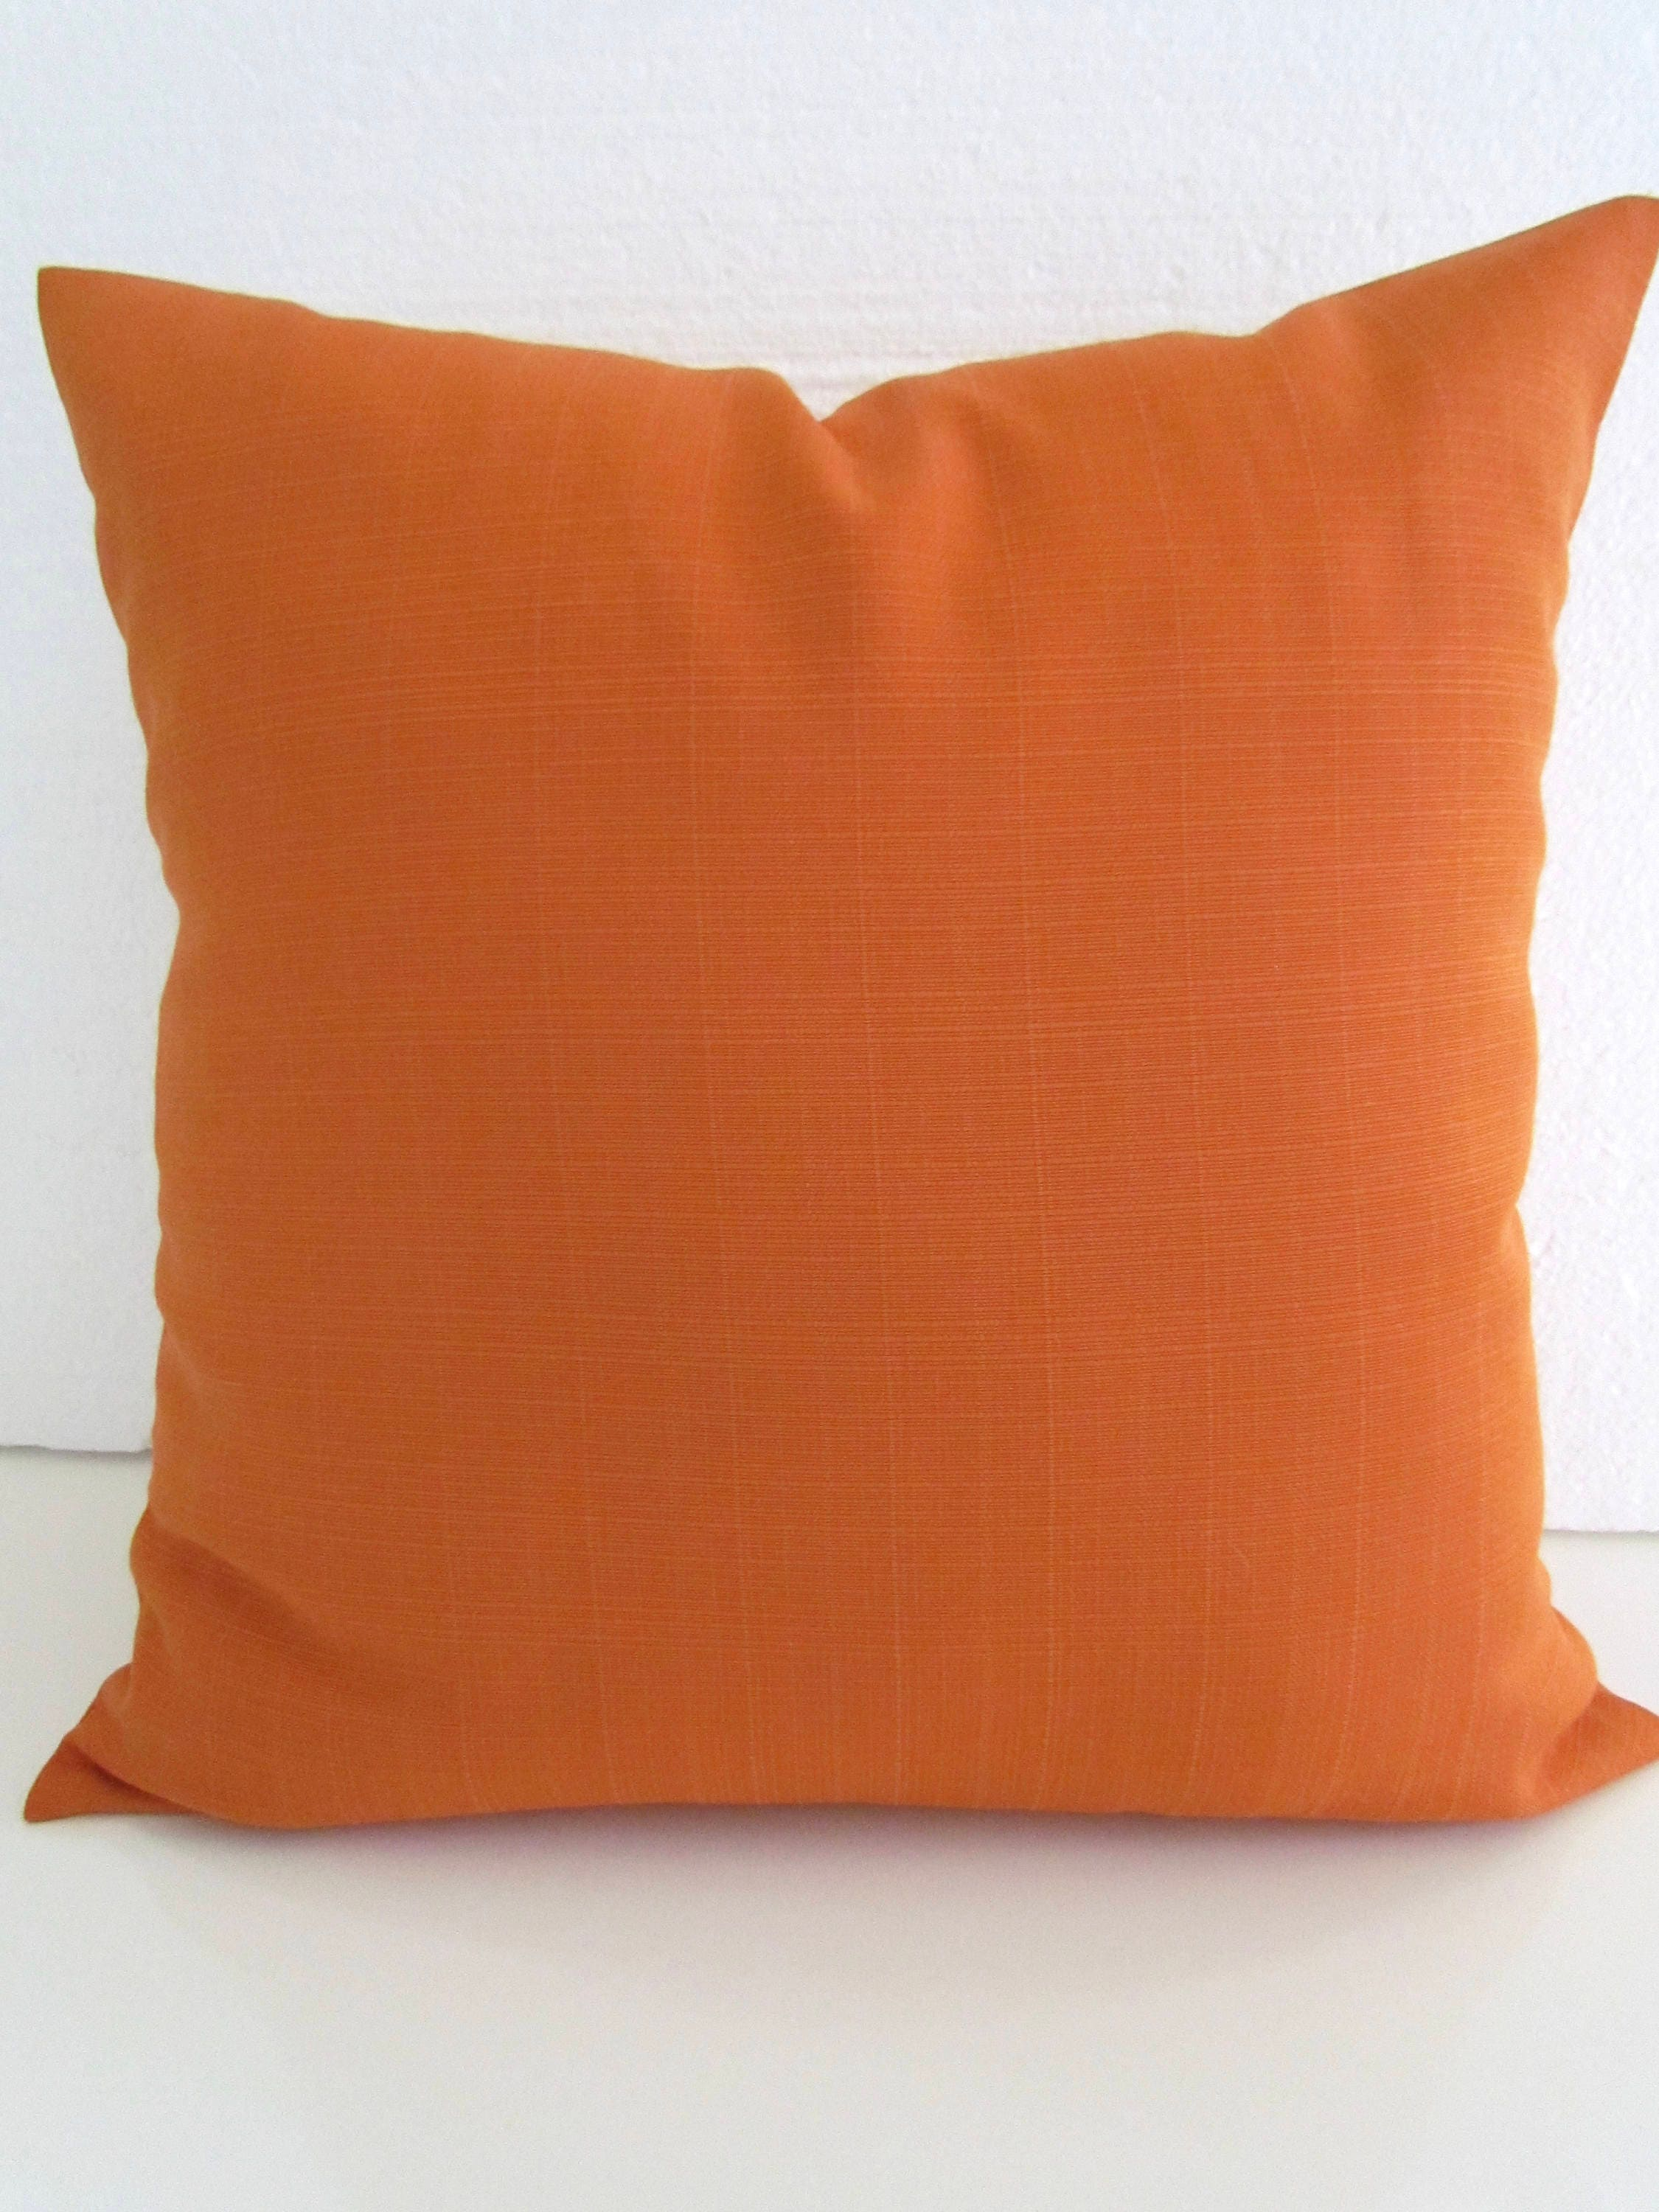 custom depot car inspiration outdoor lumbar home tufted pillows cushion pillow chair orange by tips decor best office support for